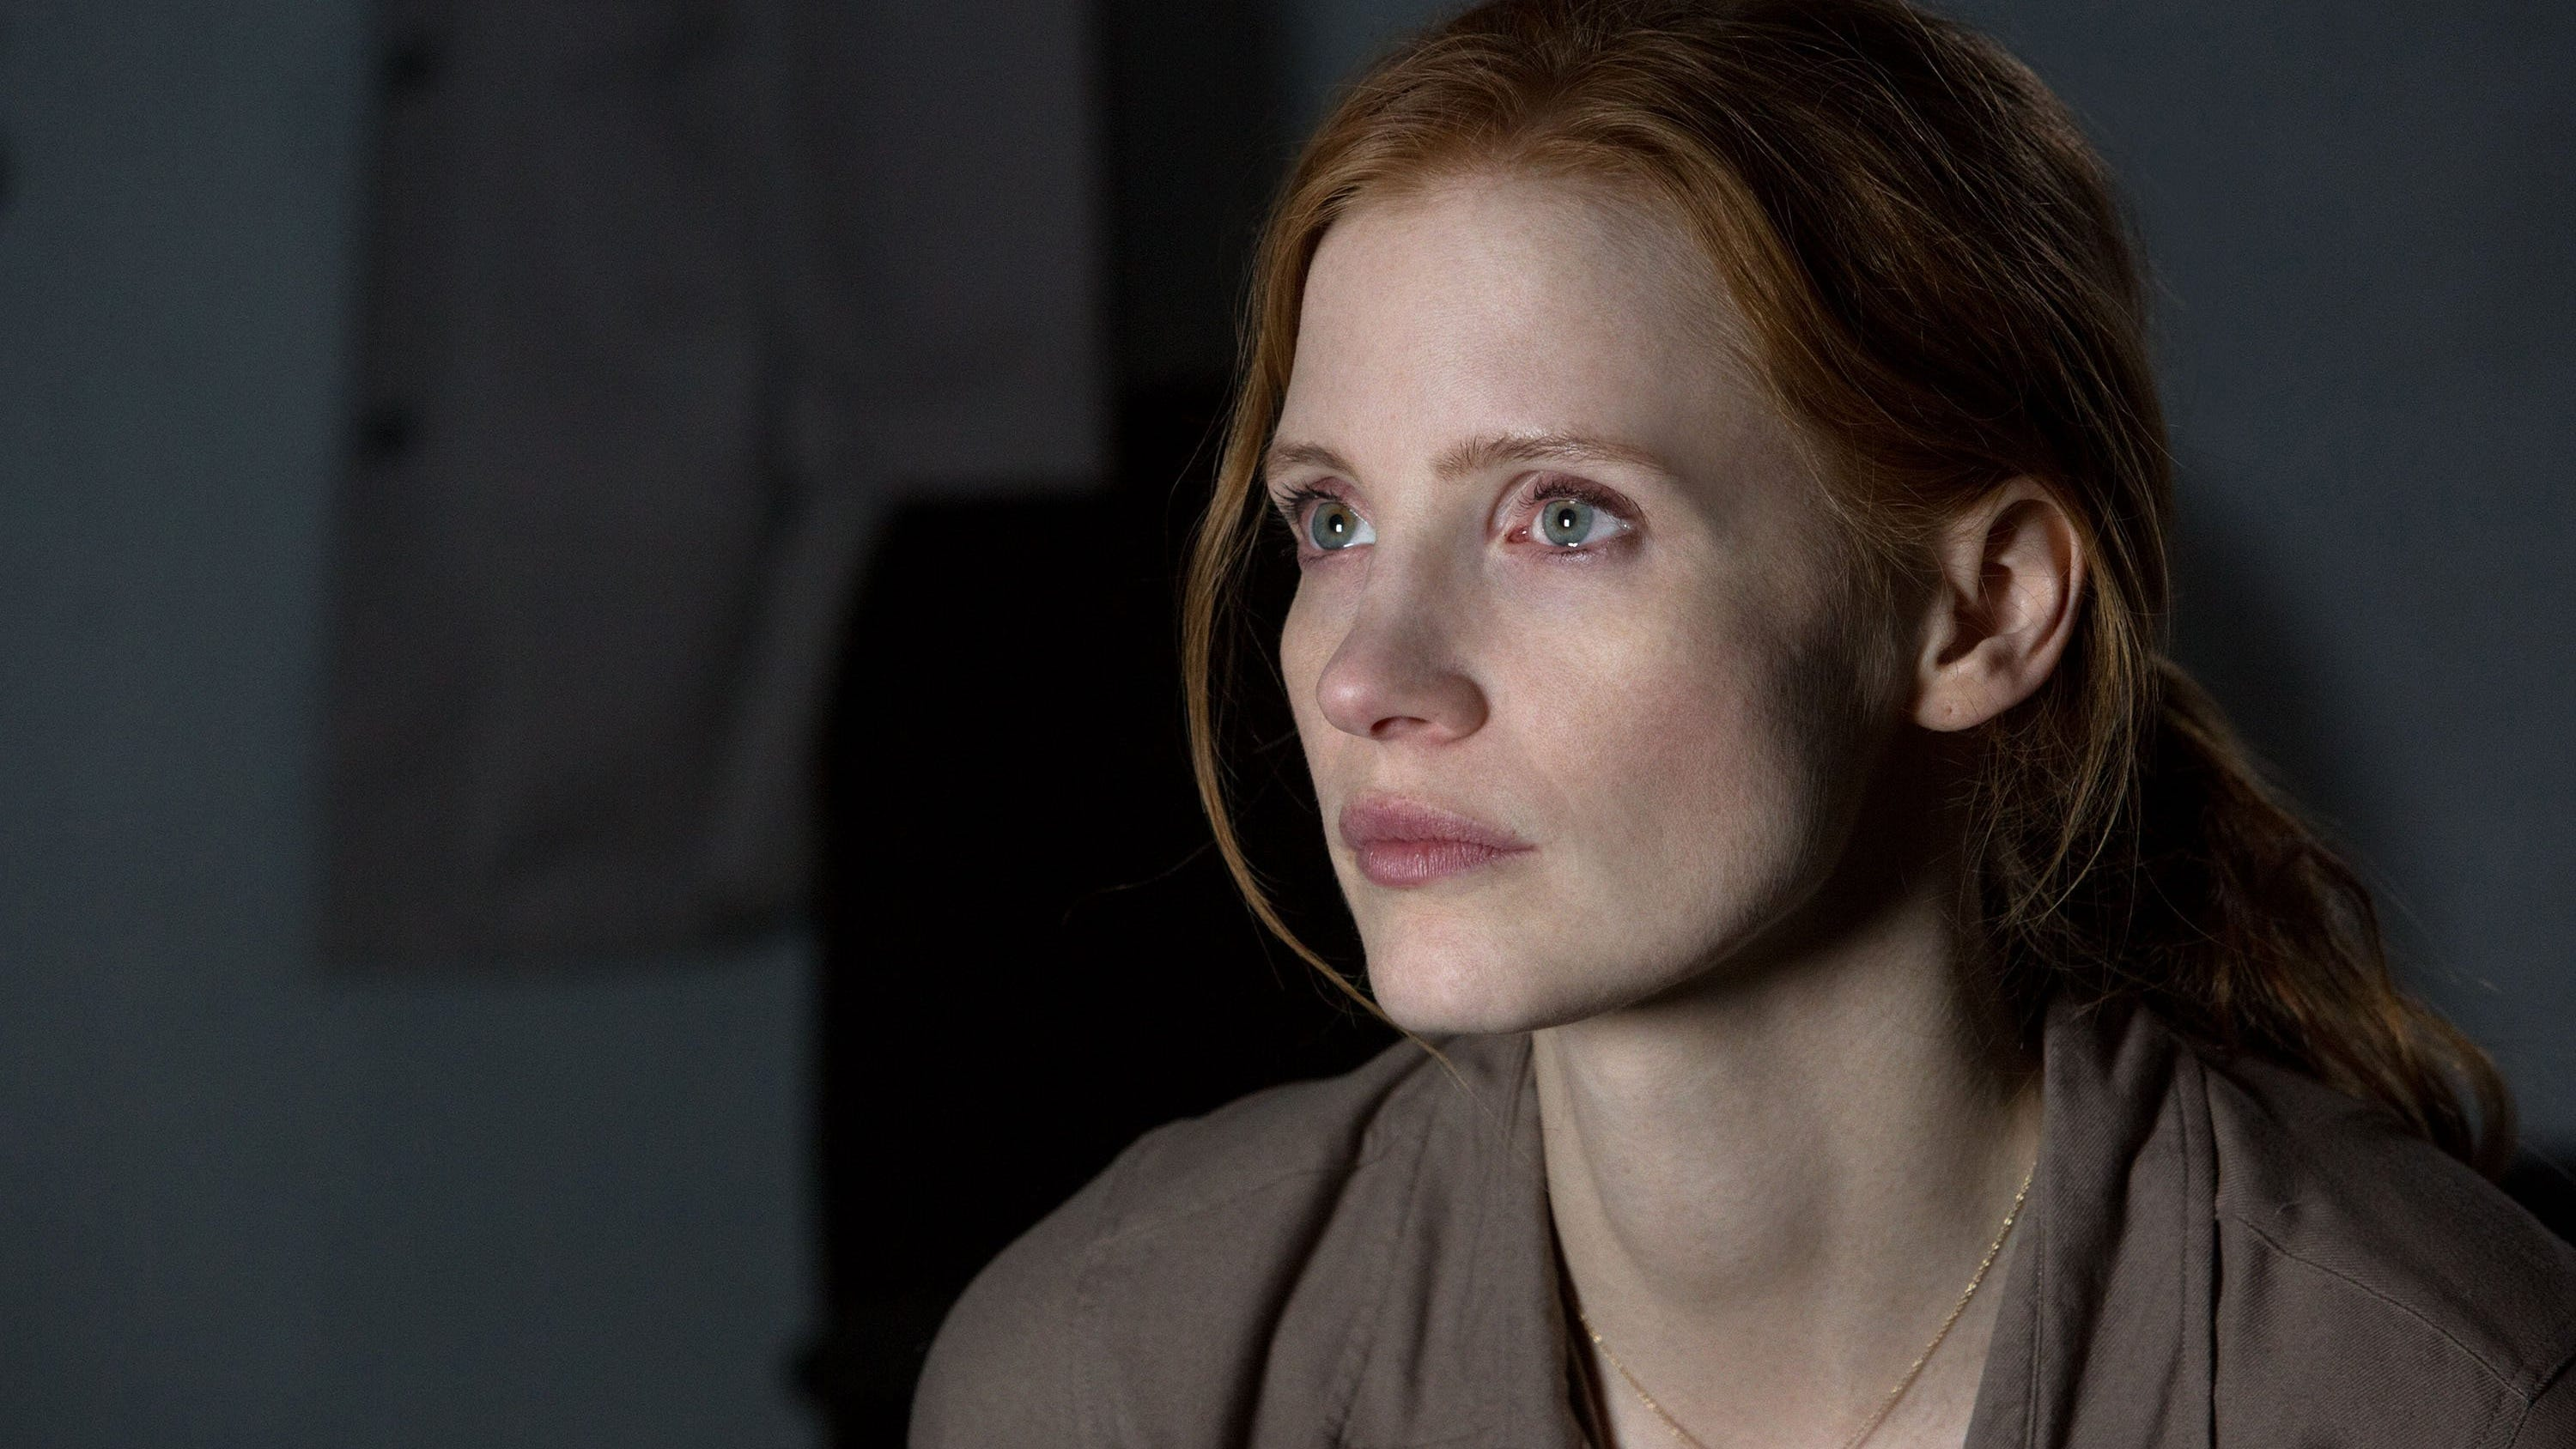 Jessica Chastain Opens Up About Space Epic Interstellar